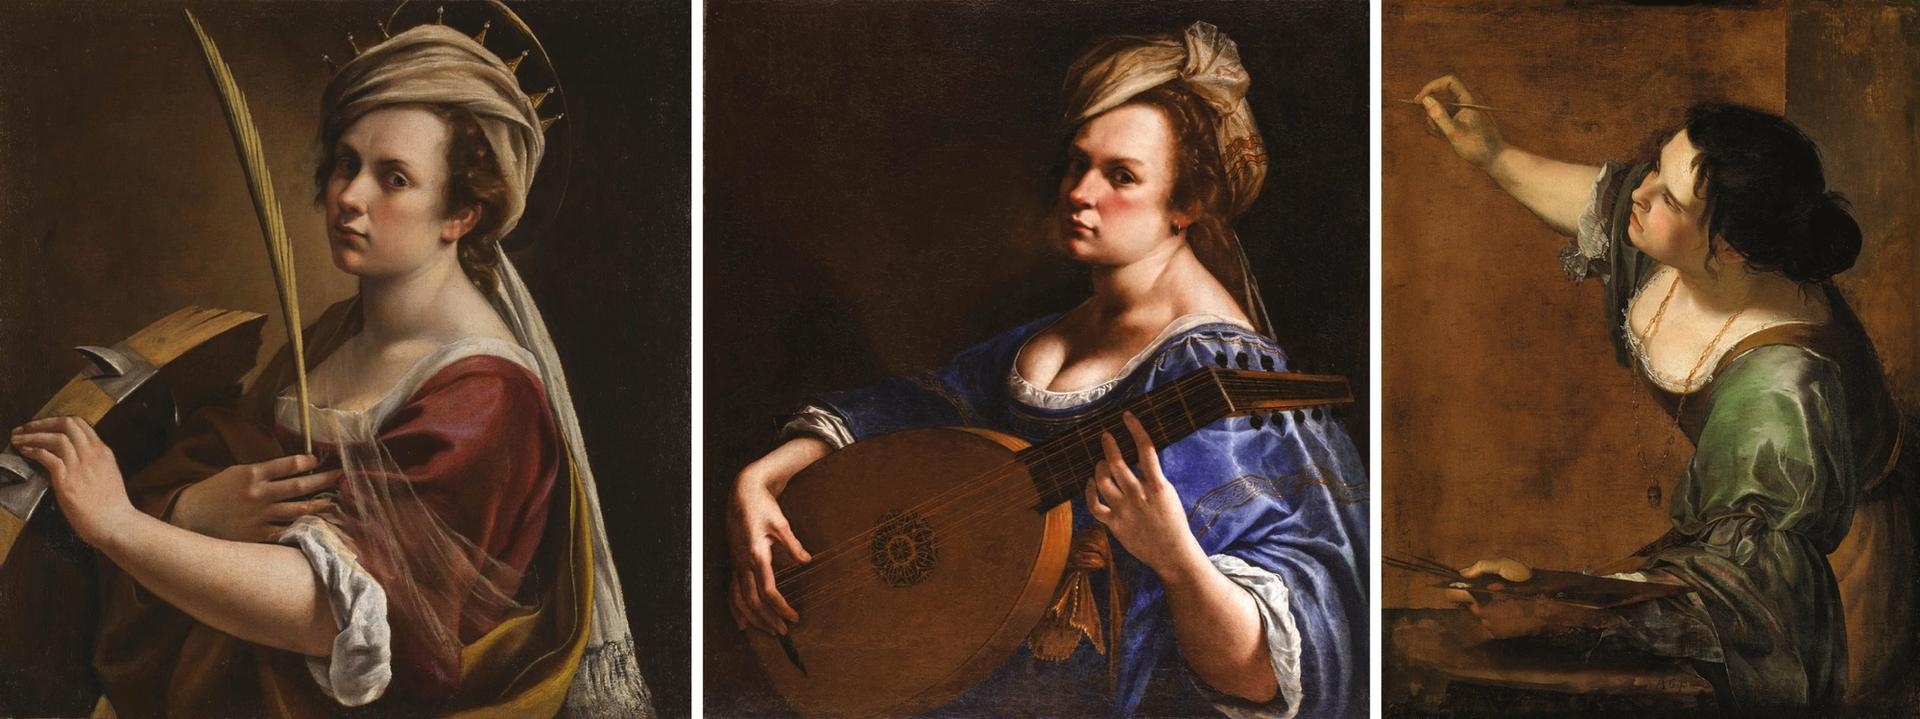 The National Gallery acquired Self-portrait as Saint Catherine of Alexandria (1615-17, far left) and hopes to secure loans of Self-portrait as a Lute Player (1615-18, centre) from the Wadsworth Atheneum Museum of Art and the Royal Collection's Self-portrait as the Allegory of Painting (1638-39)